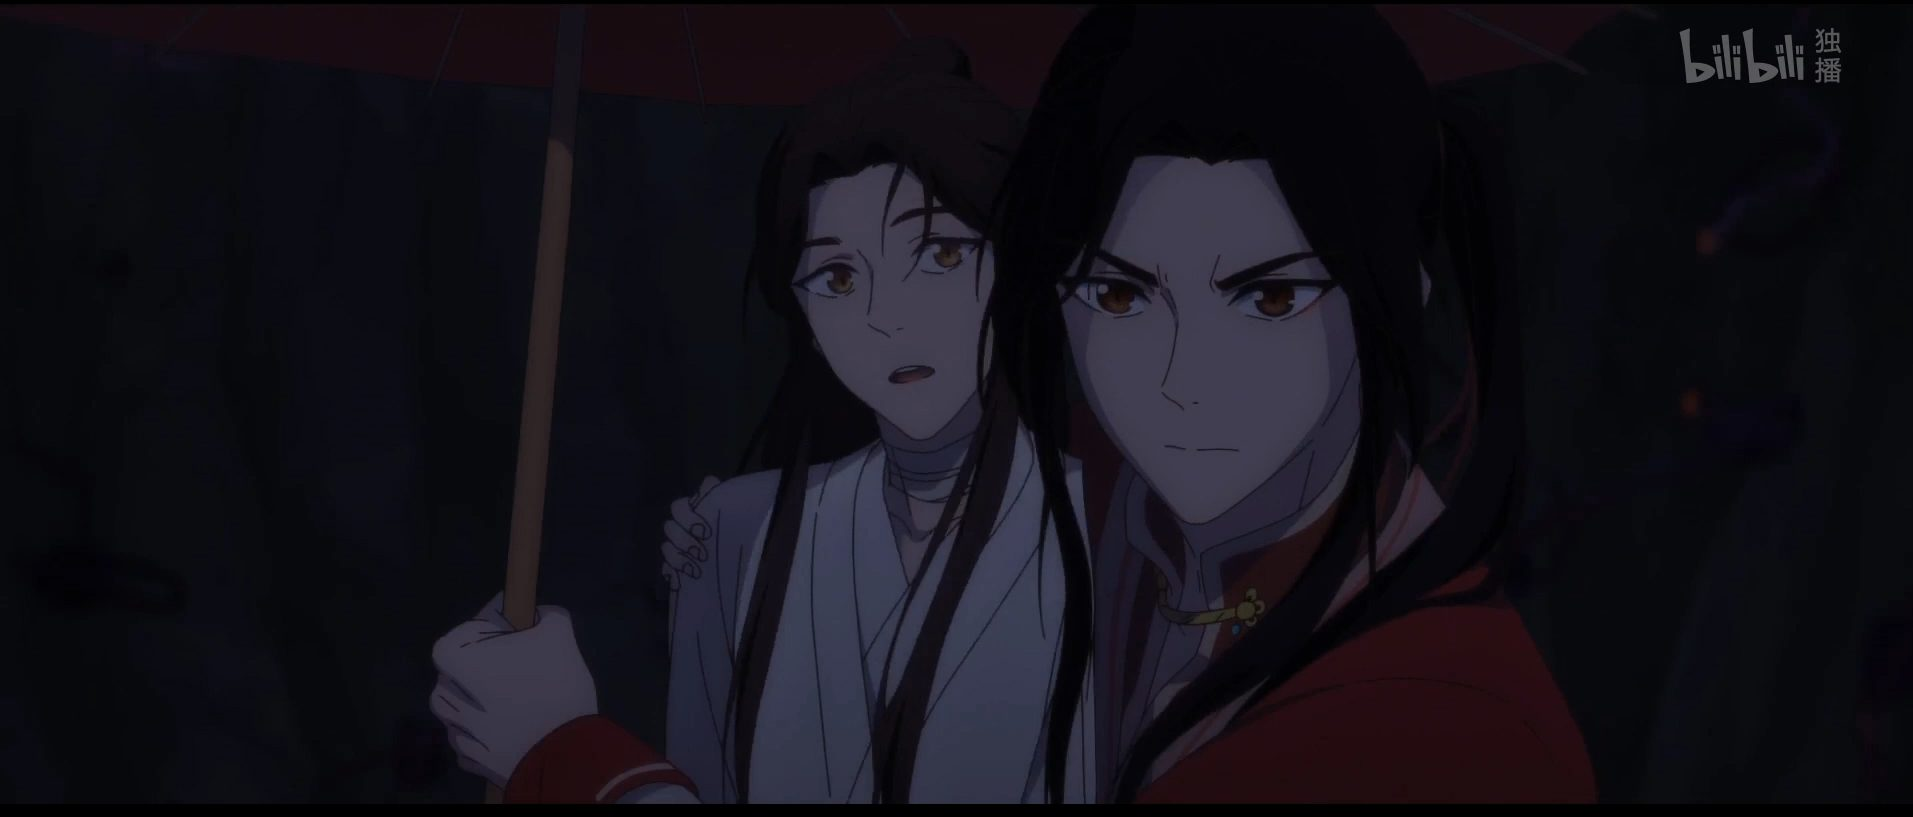 Right and Wrong, Buried in the Sand TGCF HuaLian